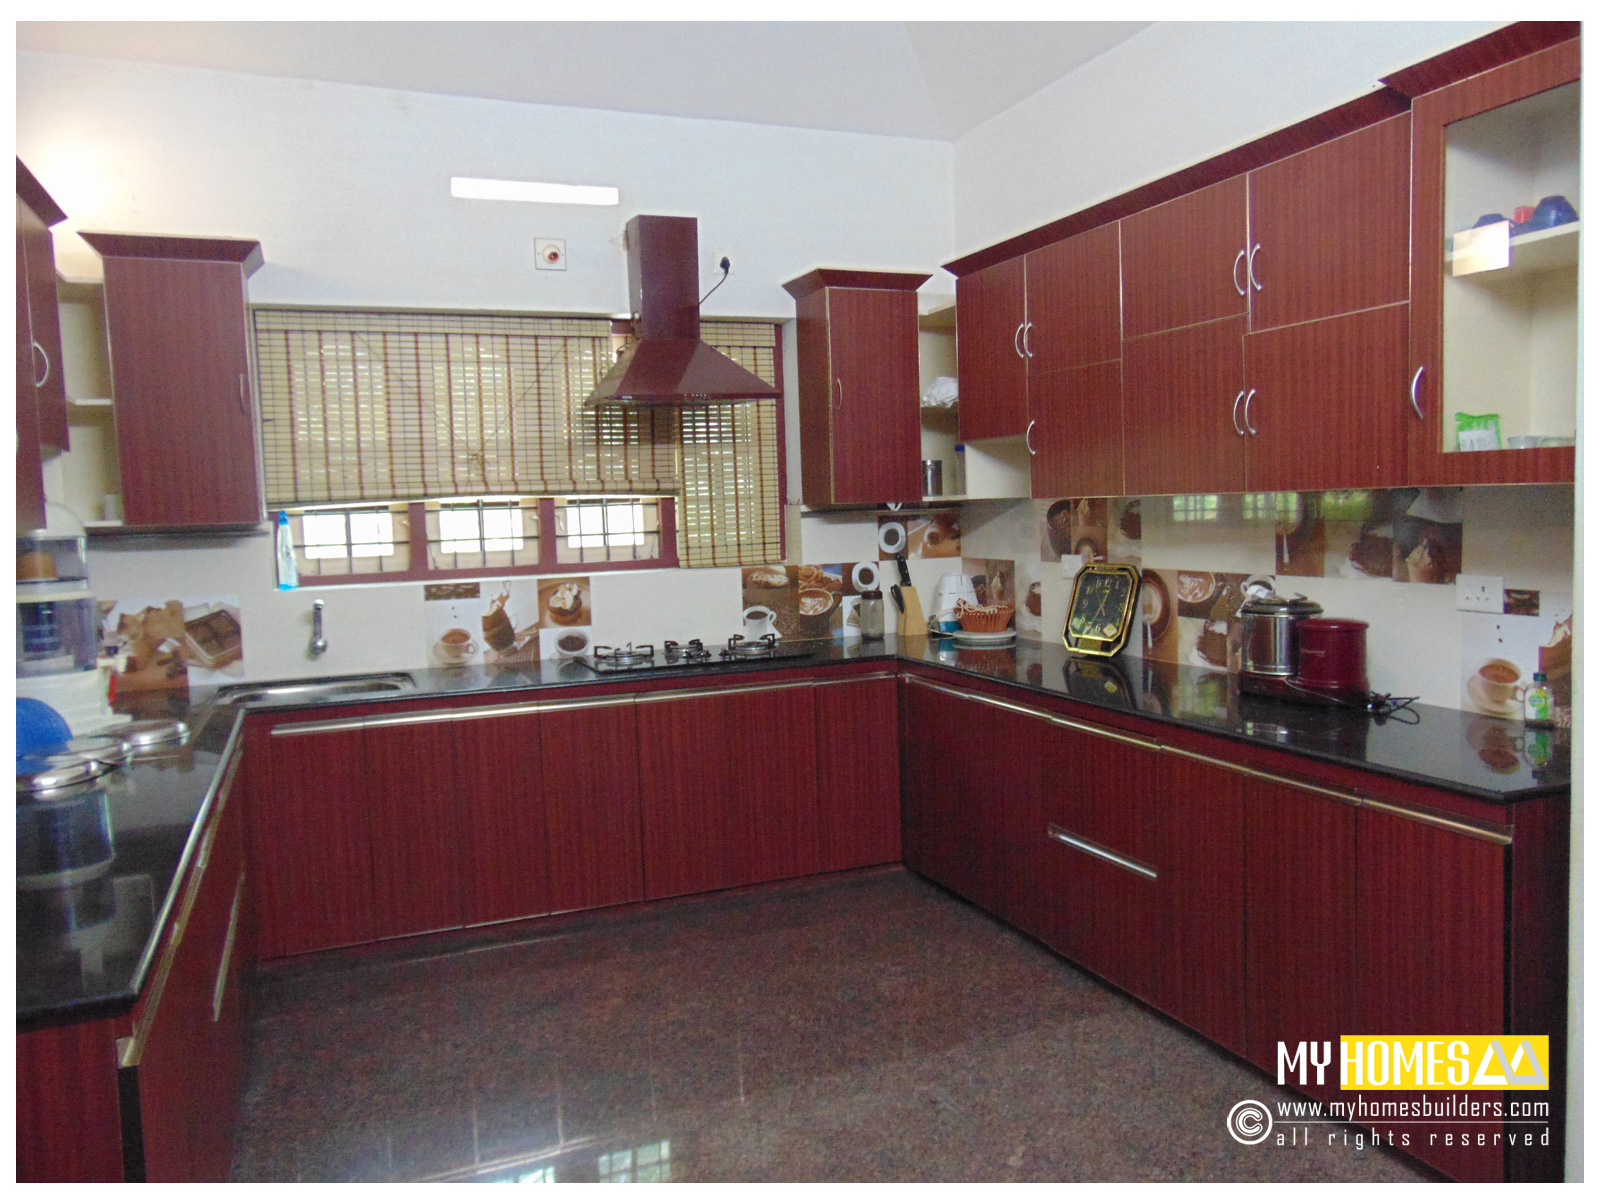 Latest Kitchen Designs Photos Budget House Kerala Home Designers And Builder In Thrissur India